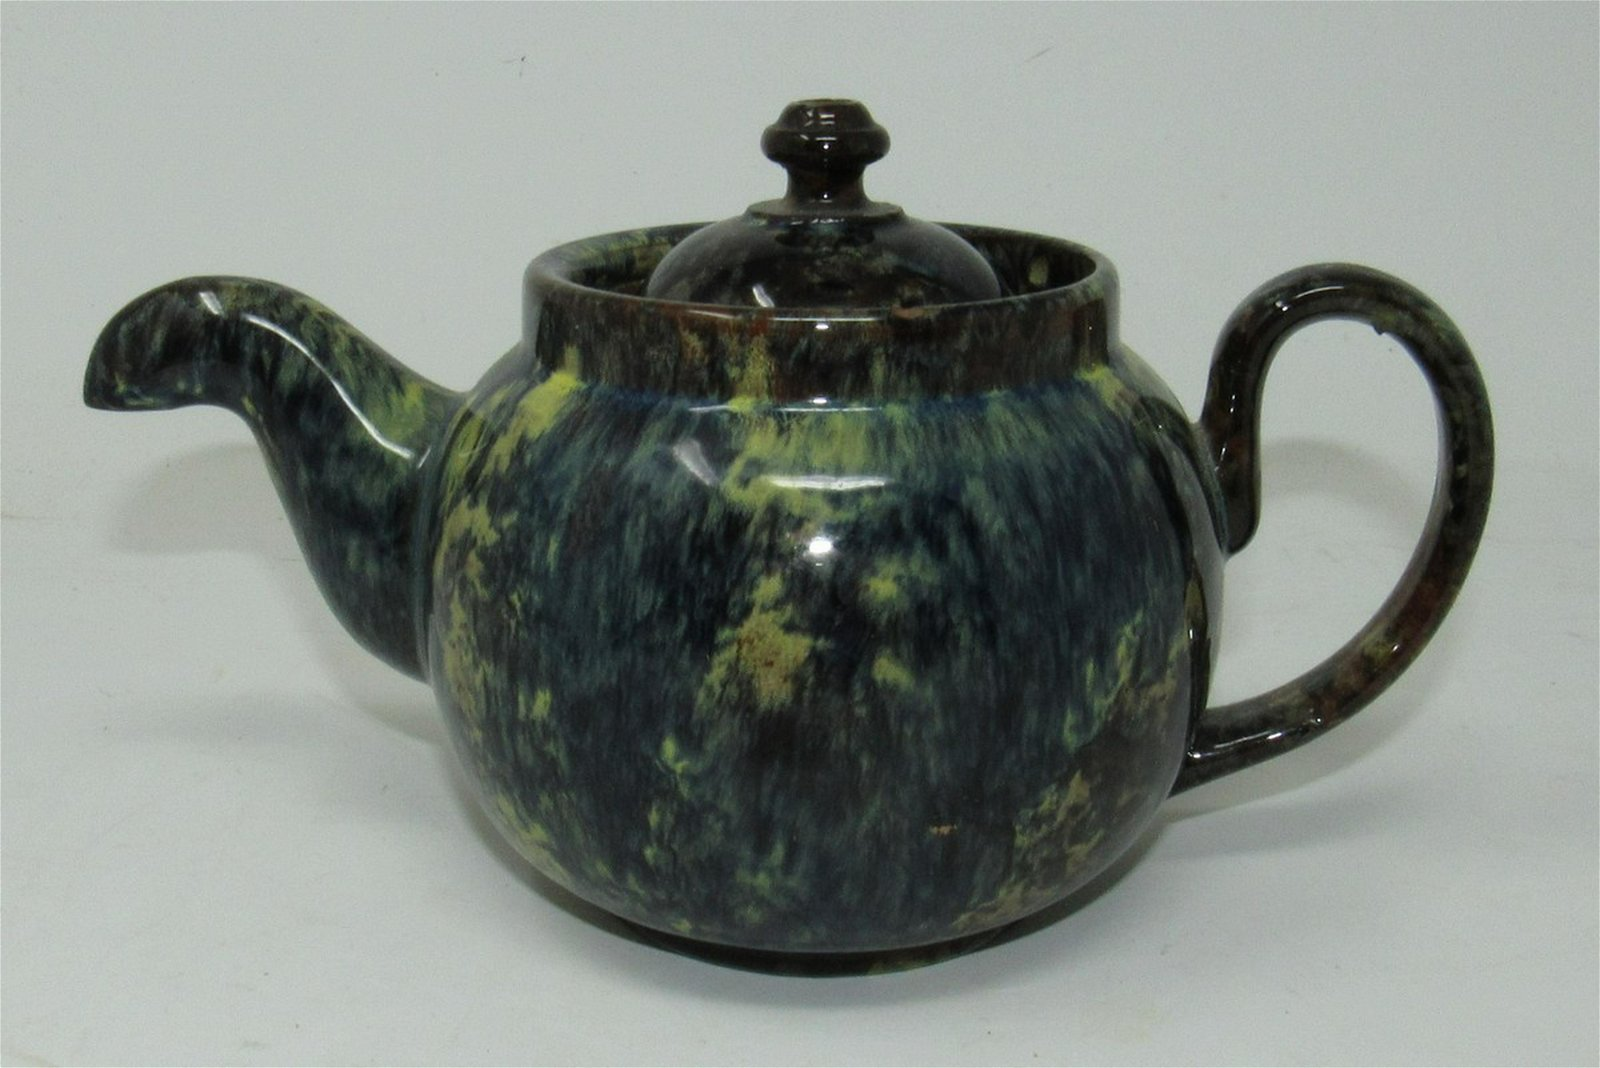 Glazed Teapot Made in England